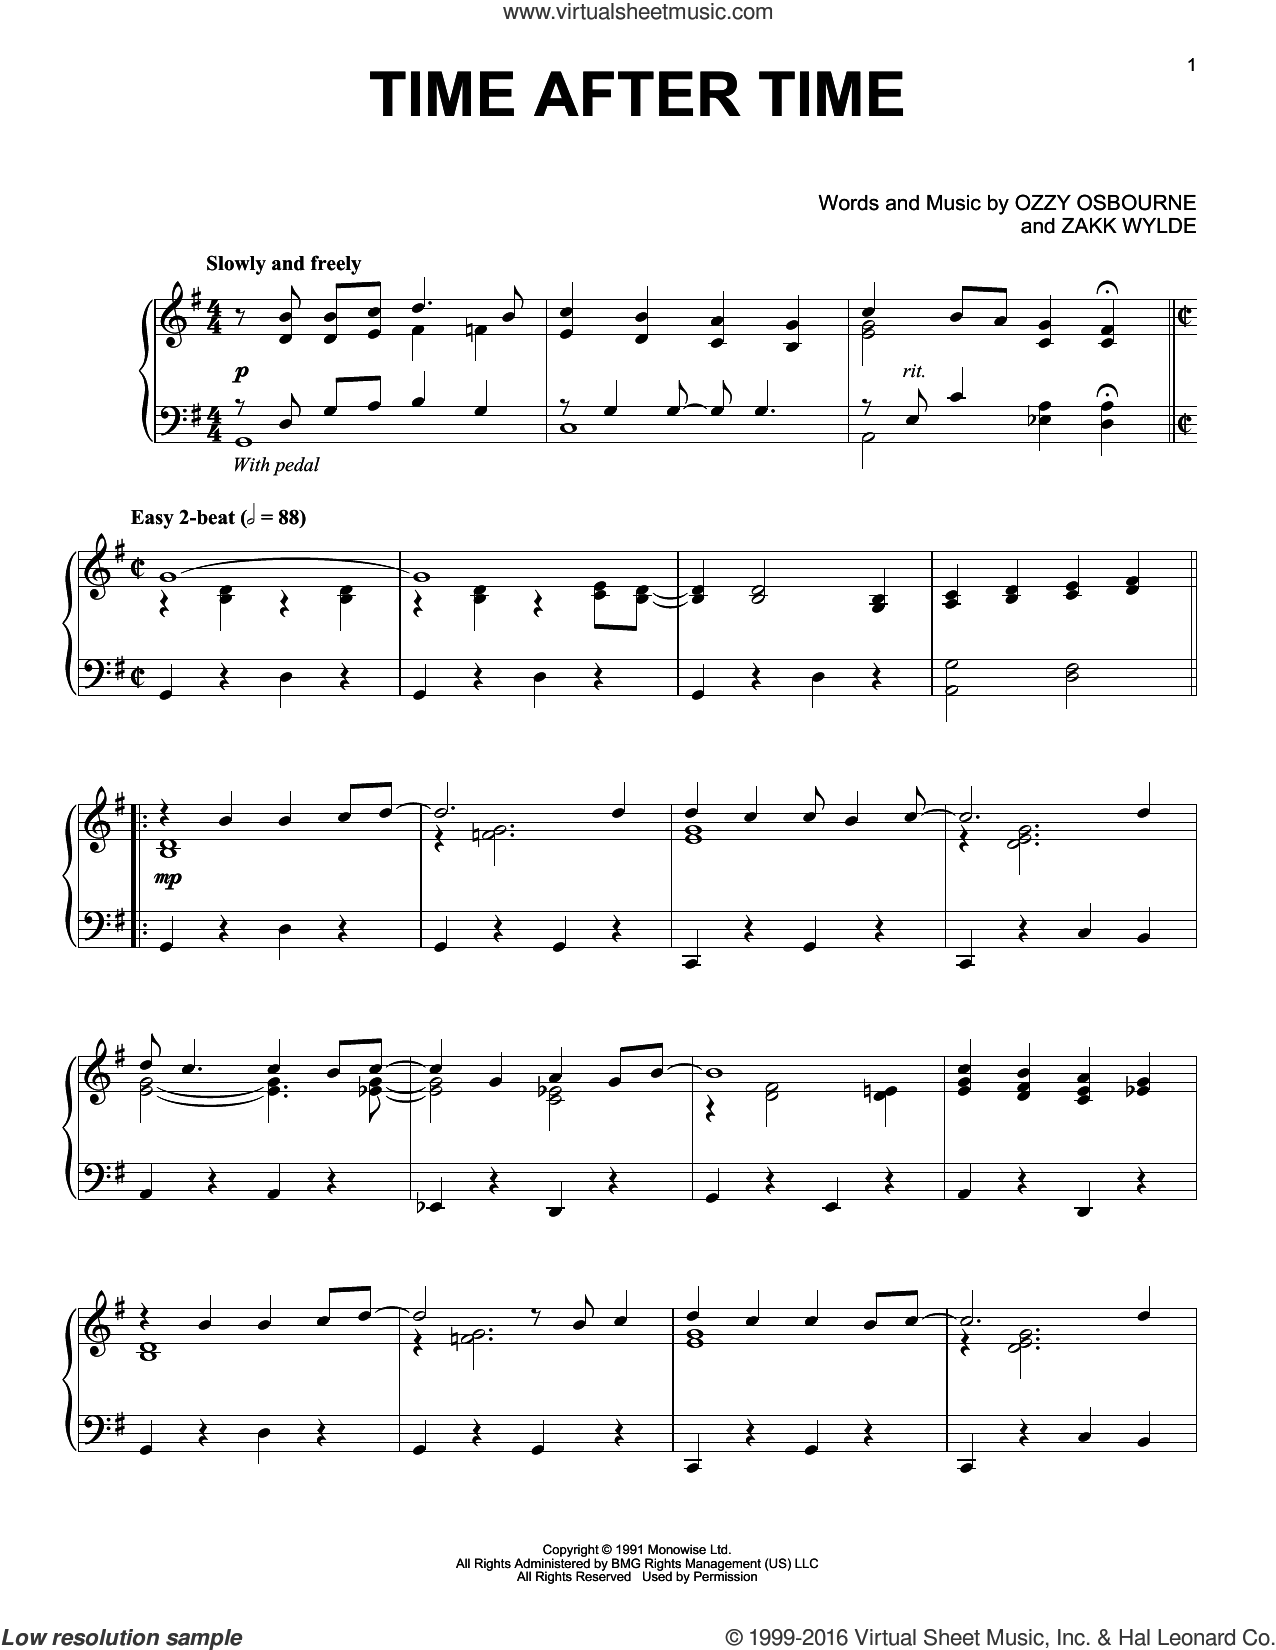 Time After Time sheet music for piano solo by Ozzy Osbourne and Zakk Wylde, intermediate skill level